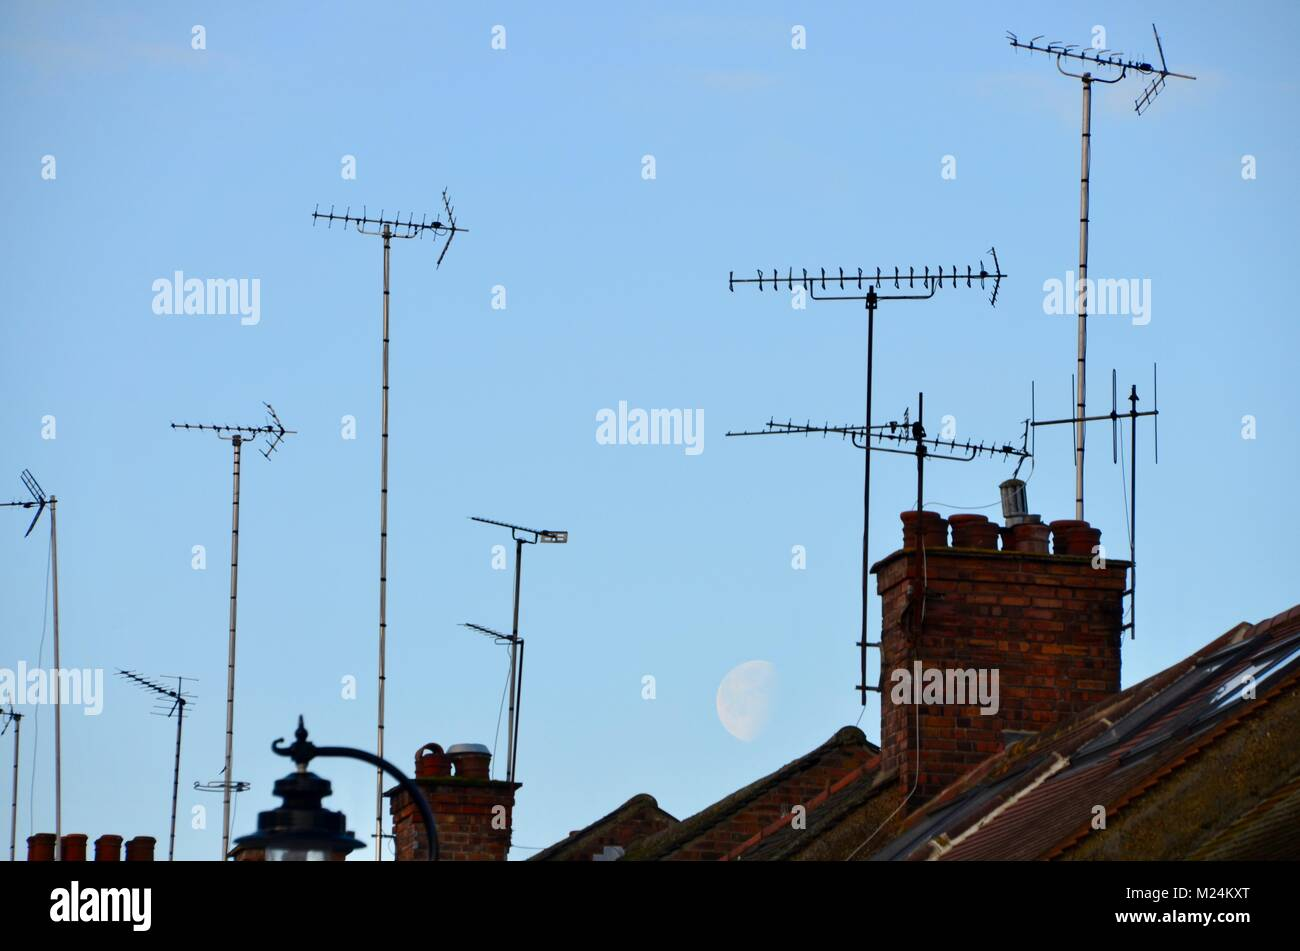 aerials and chimneys on london houses with a large moon behind - Stock Image